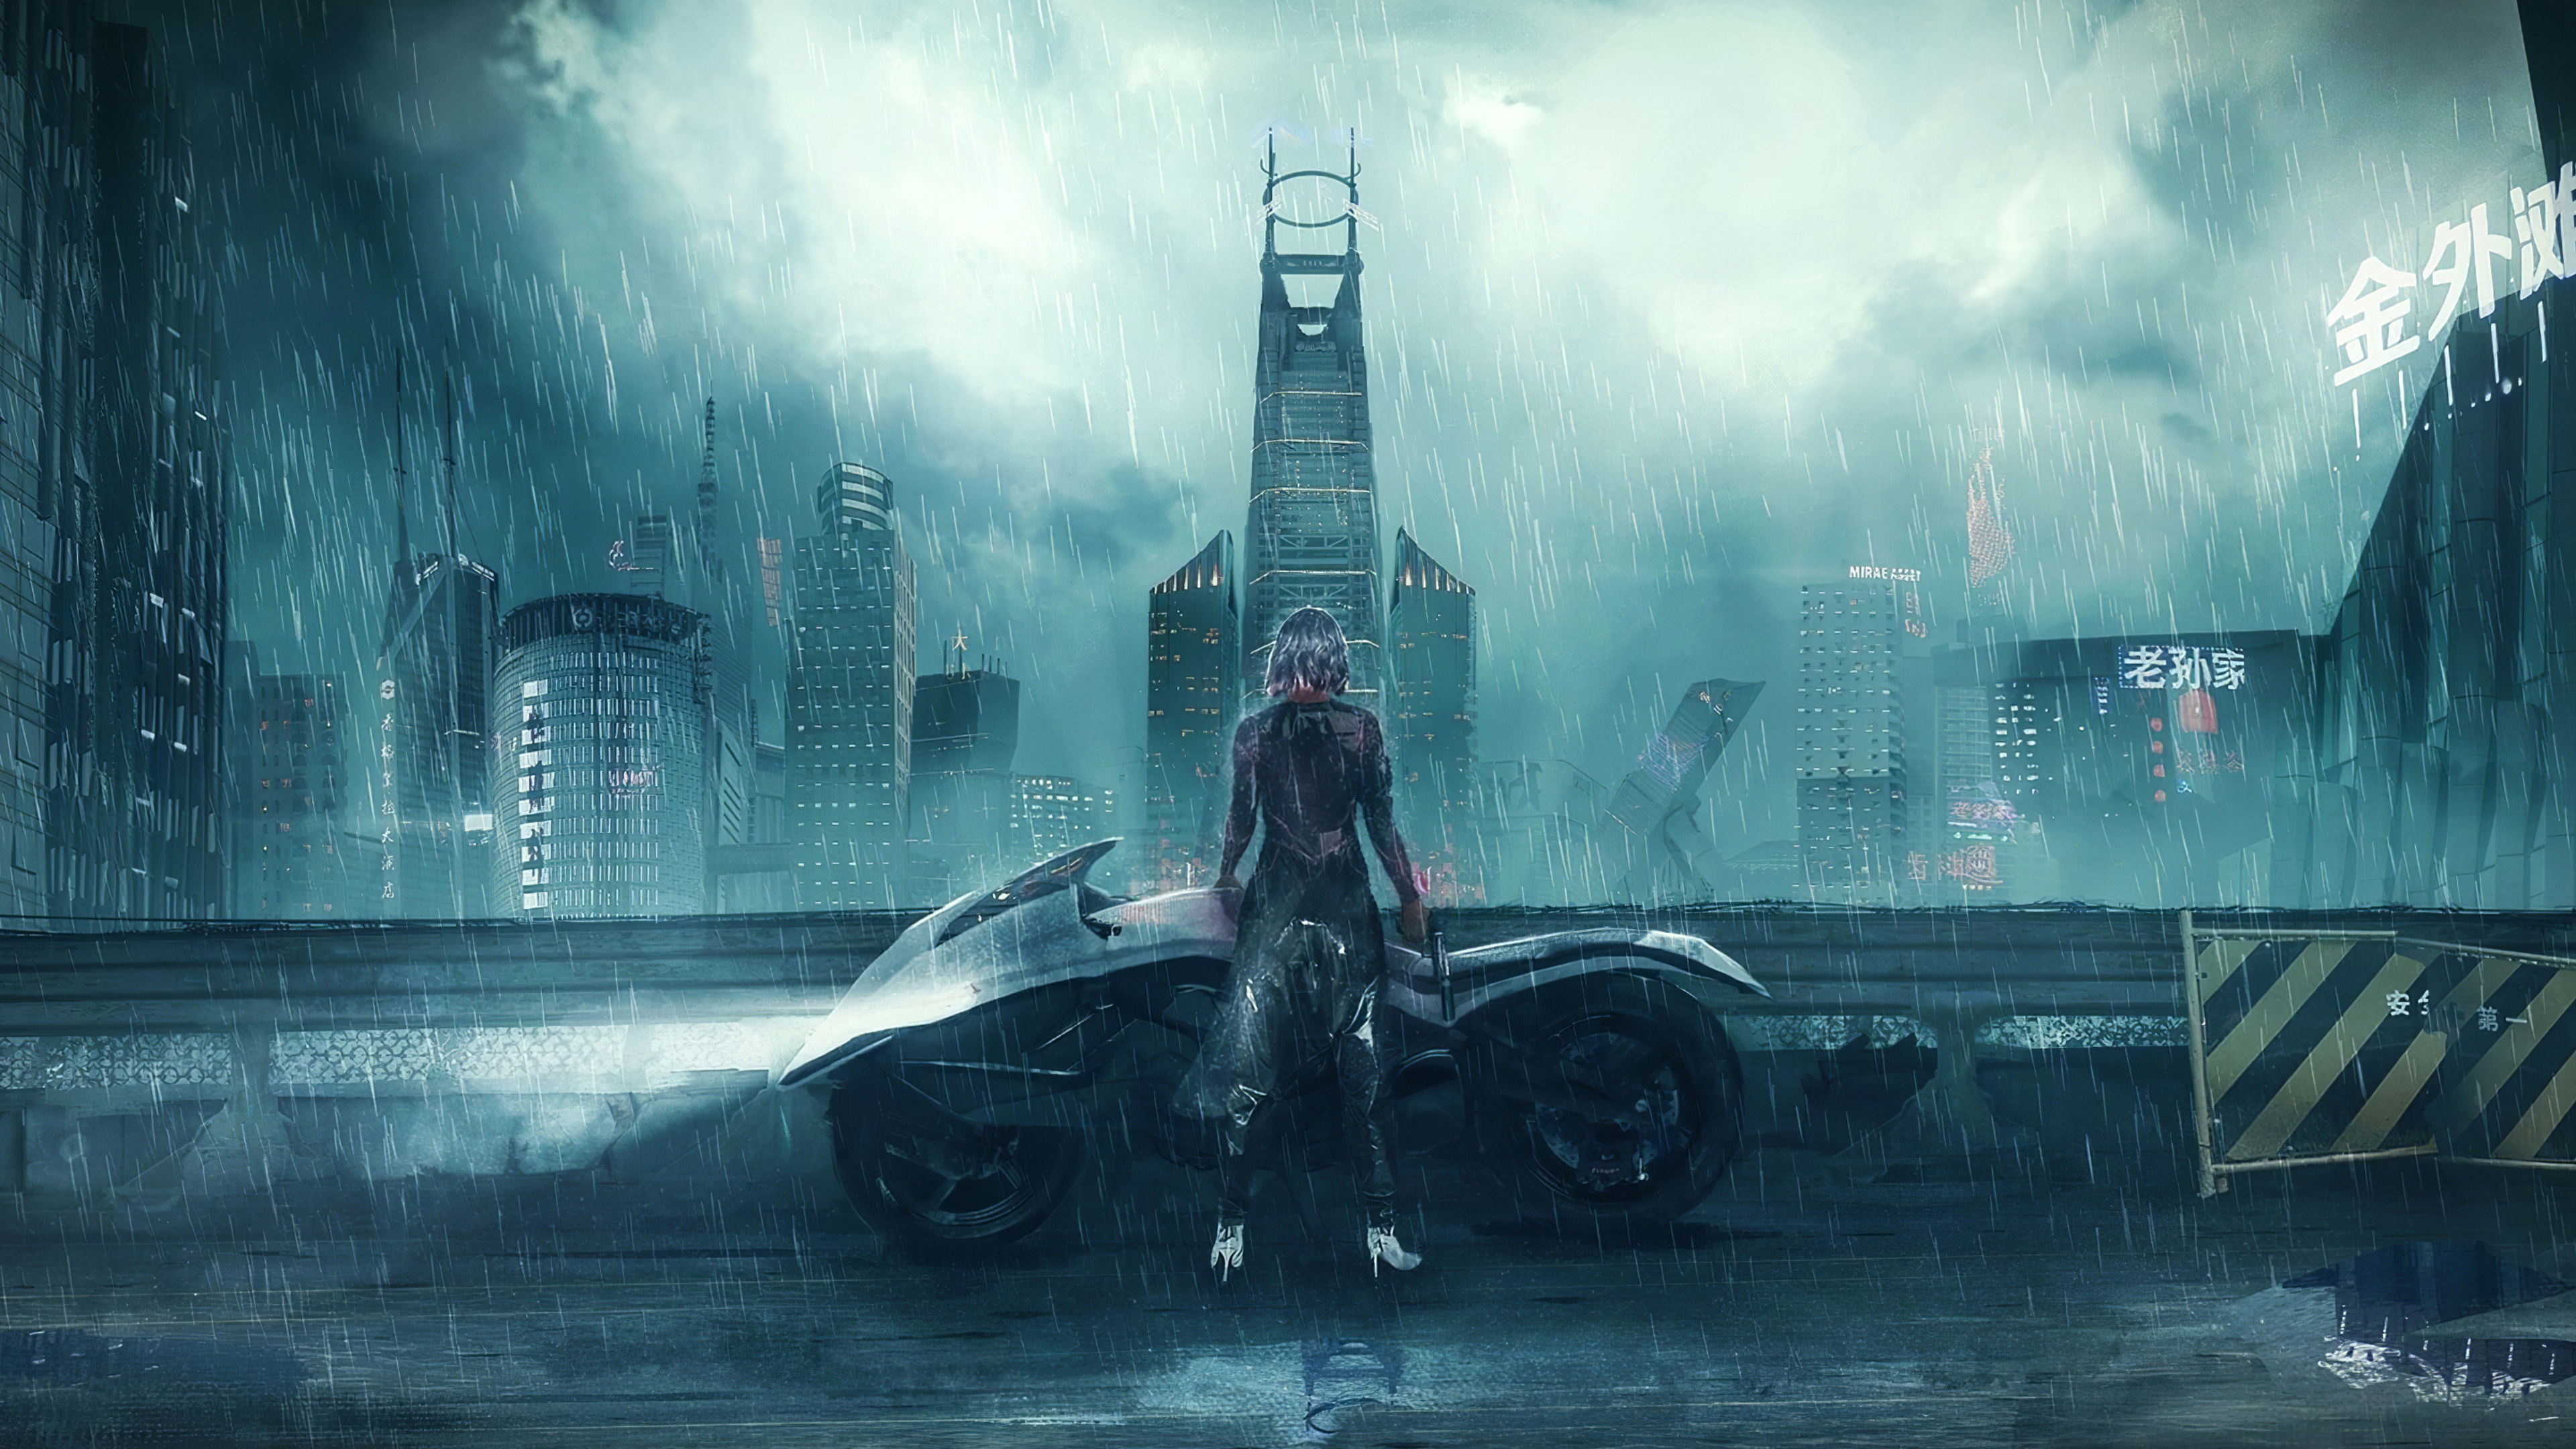 cyber-city-bike-girl-v5.jpg